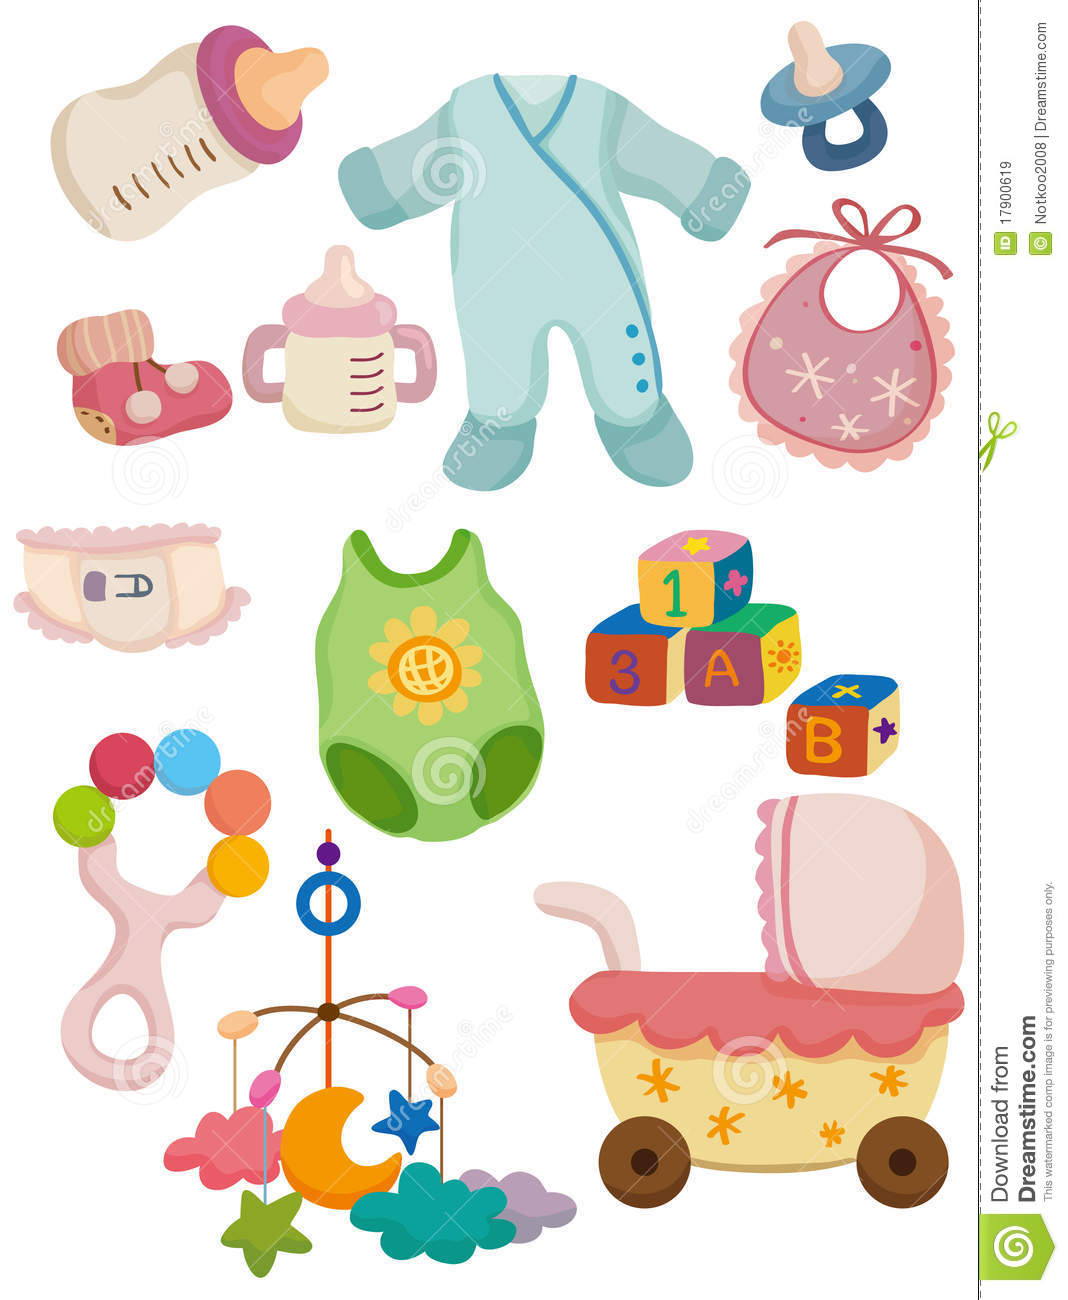 Cartoon Baby Stuff Icon Royalty Free Stock Images - Image: 17900619